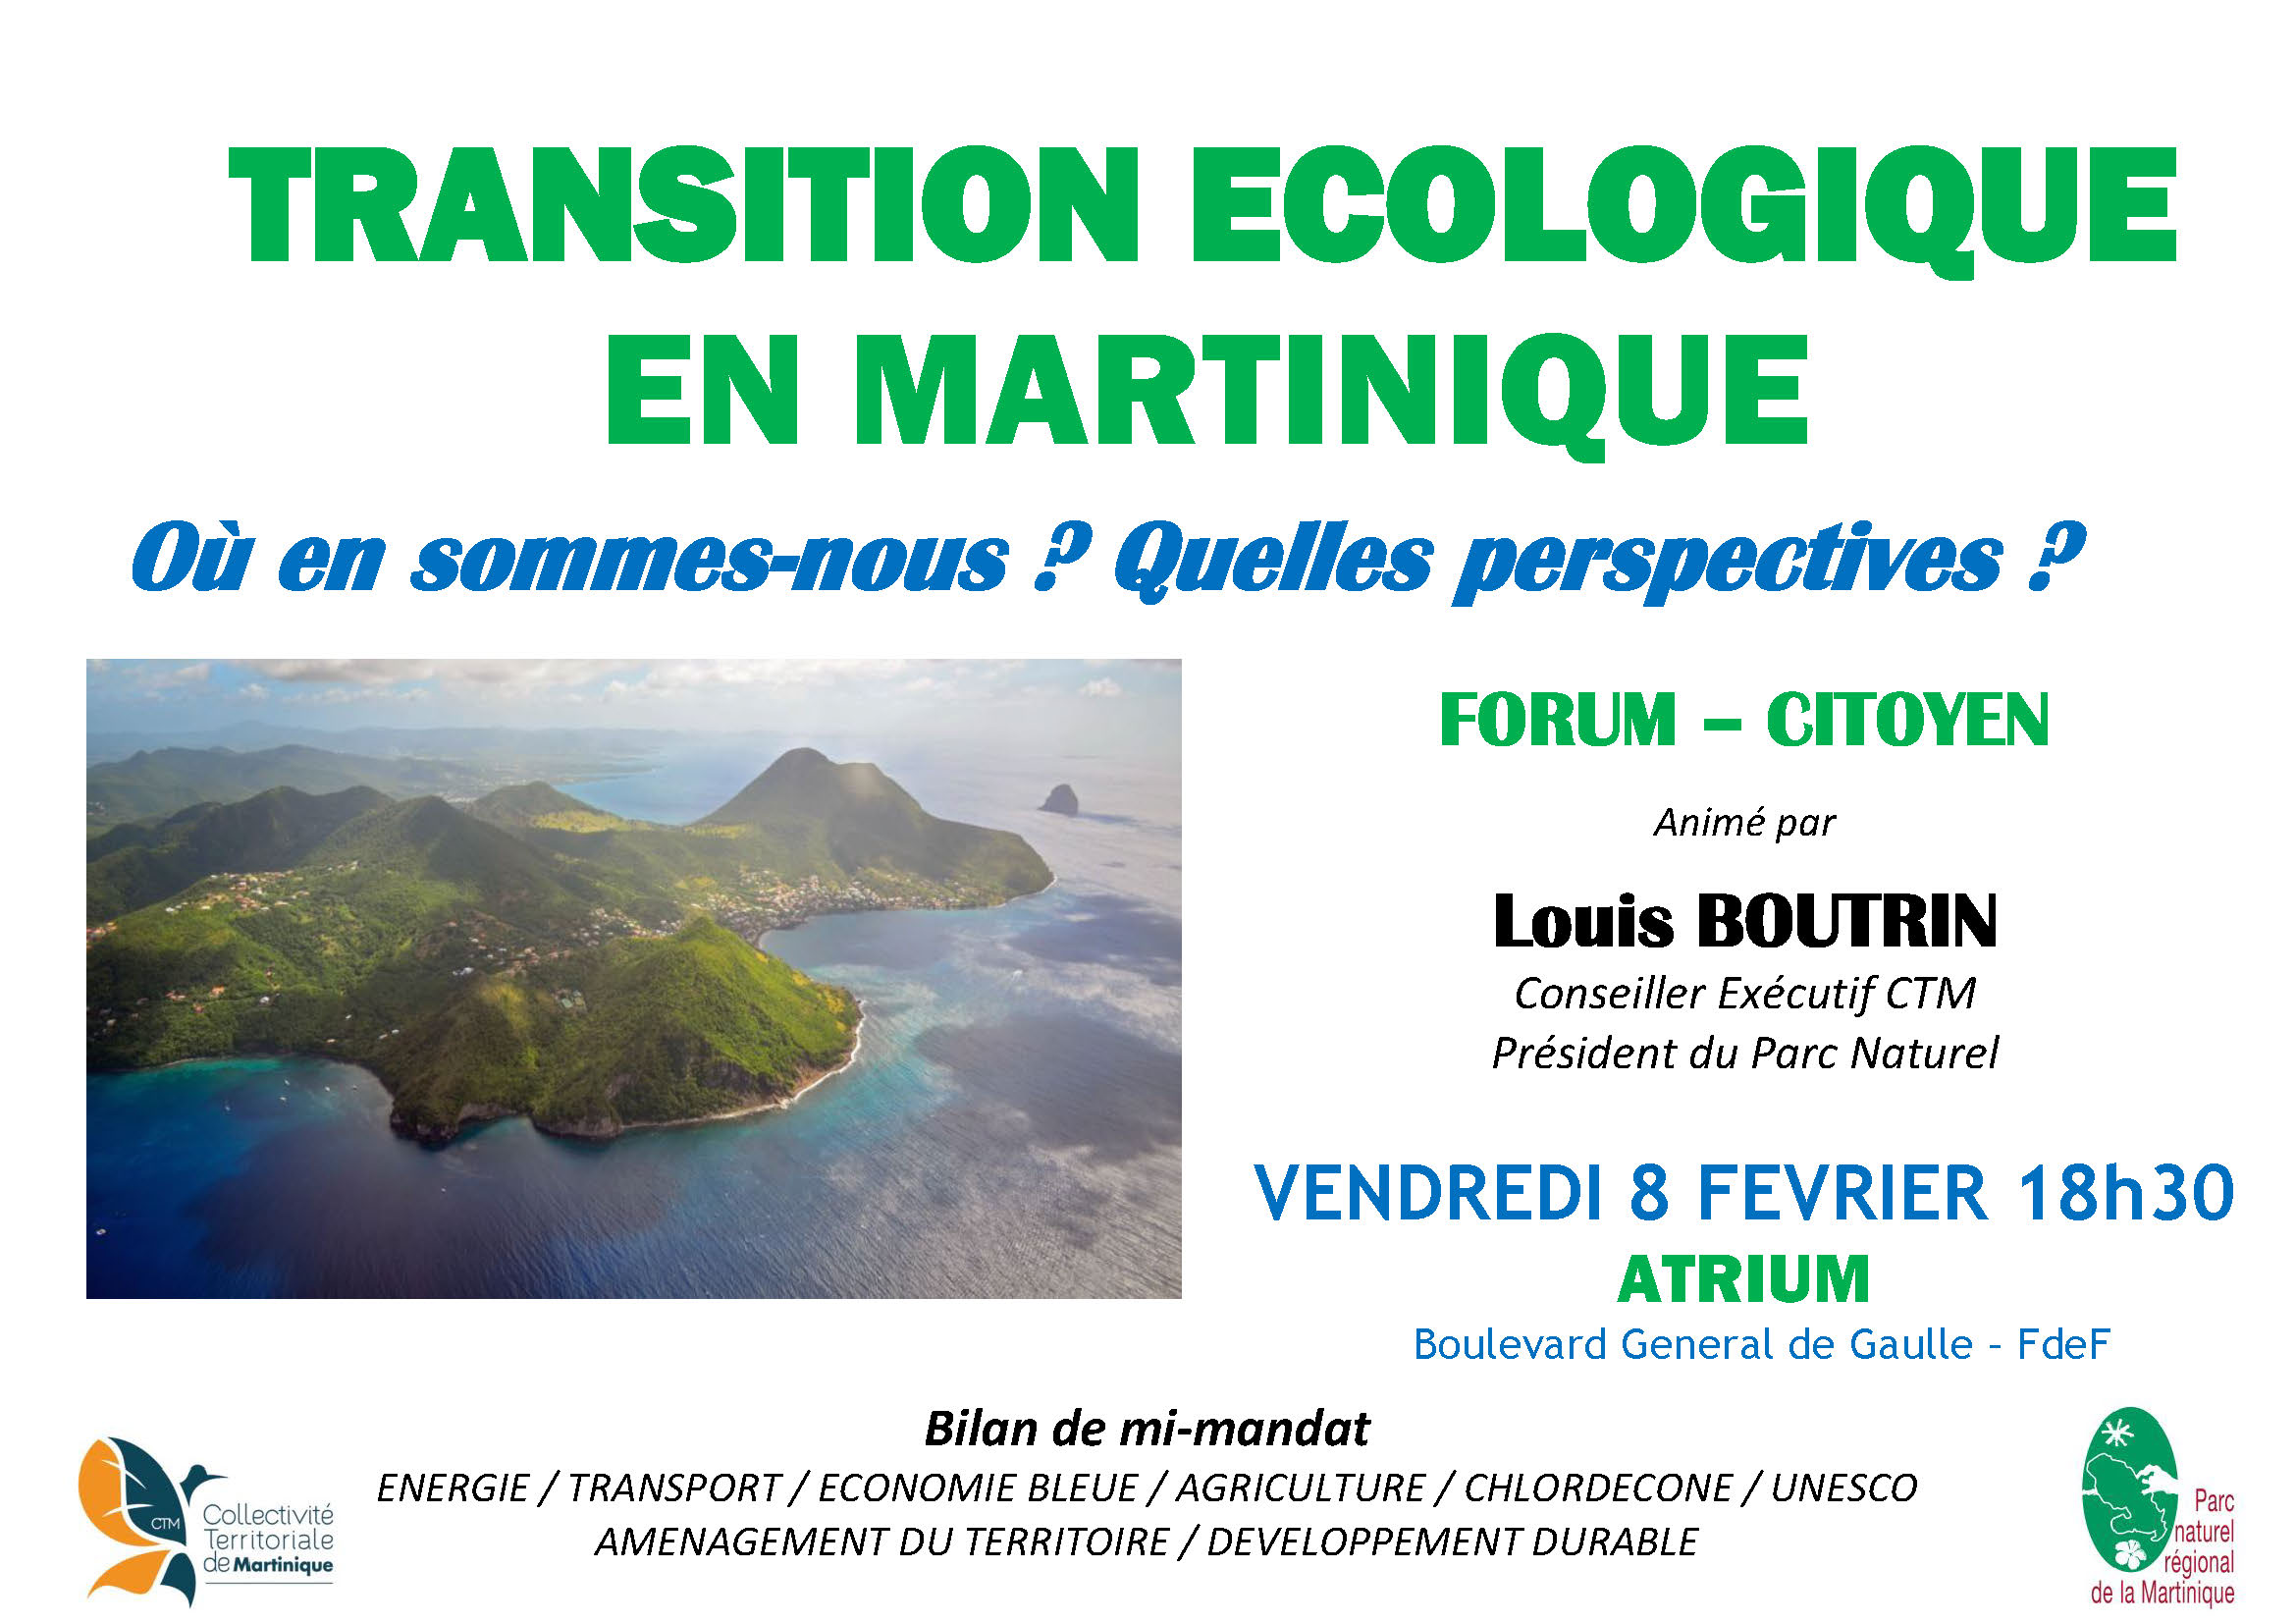 flyer transition ecologique forum debat - 8 fev. 2019.jpg